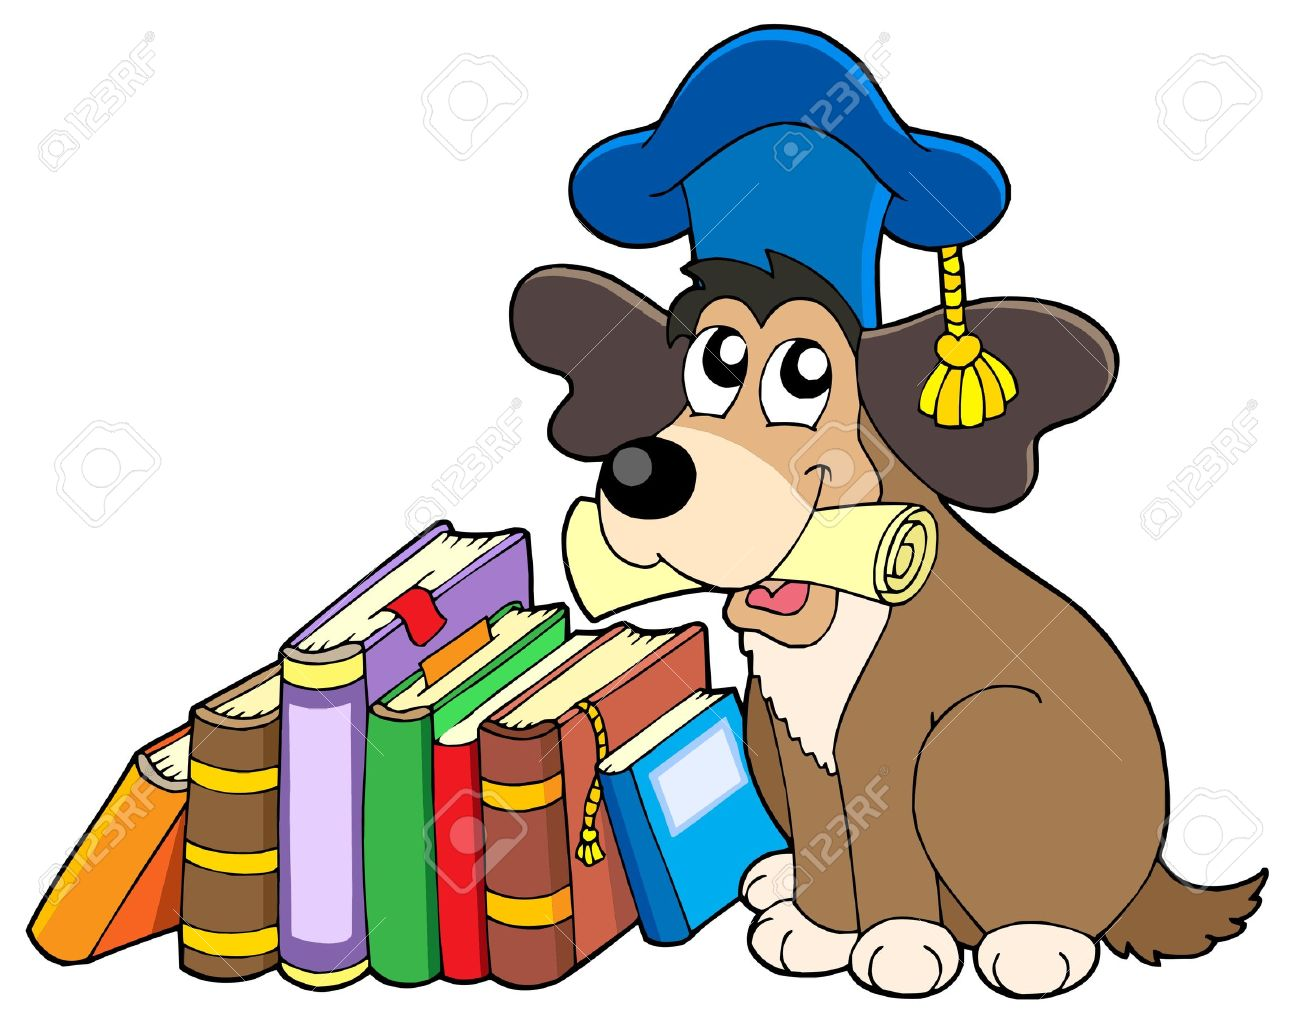 dog teacher with books - vector illustration. royalty free